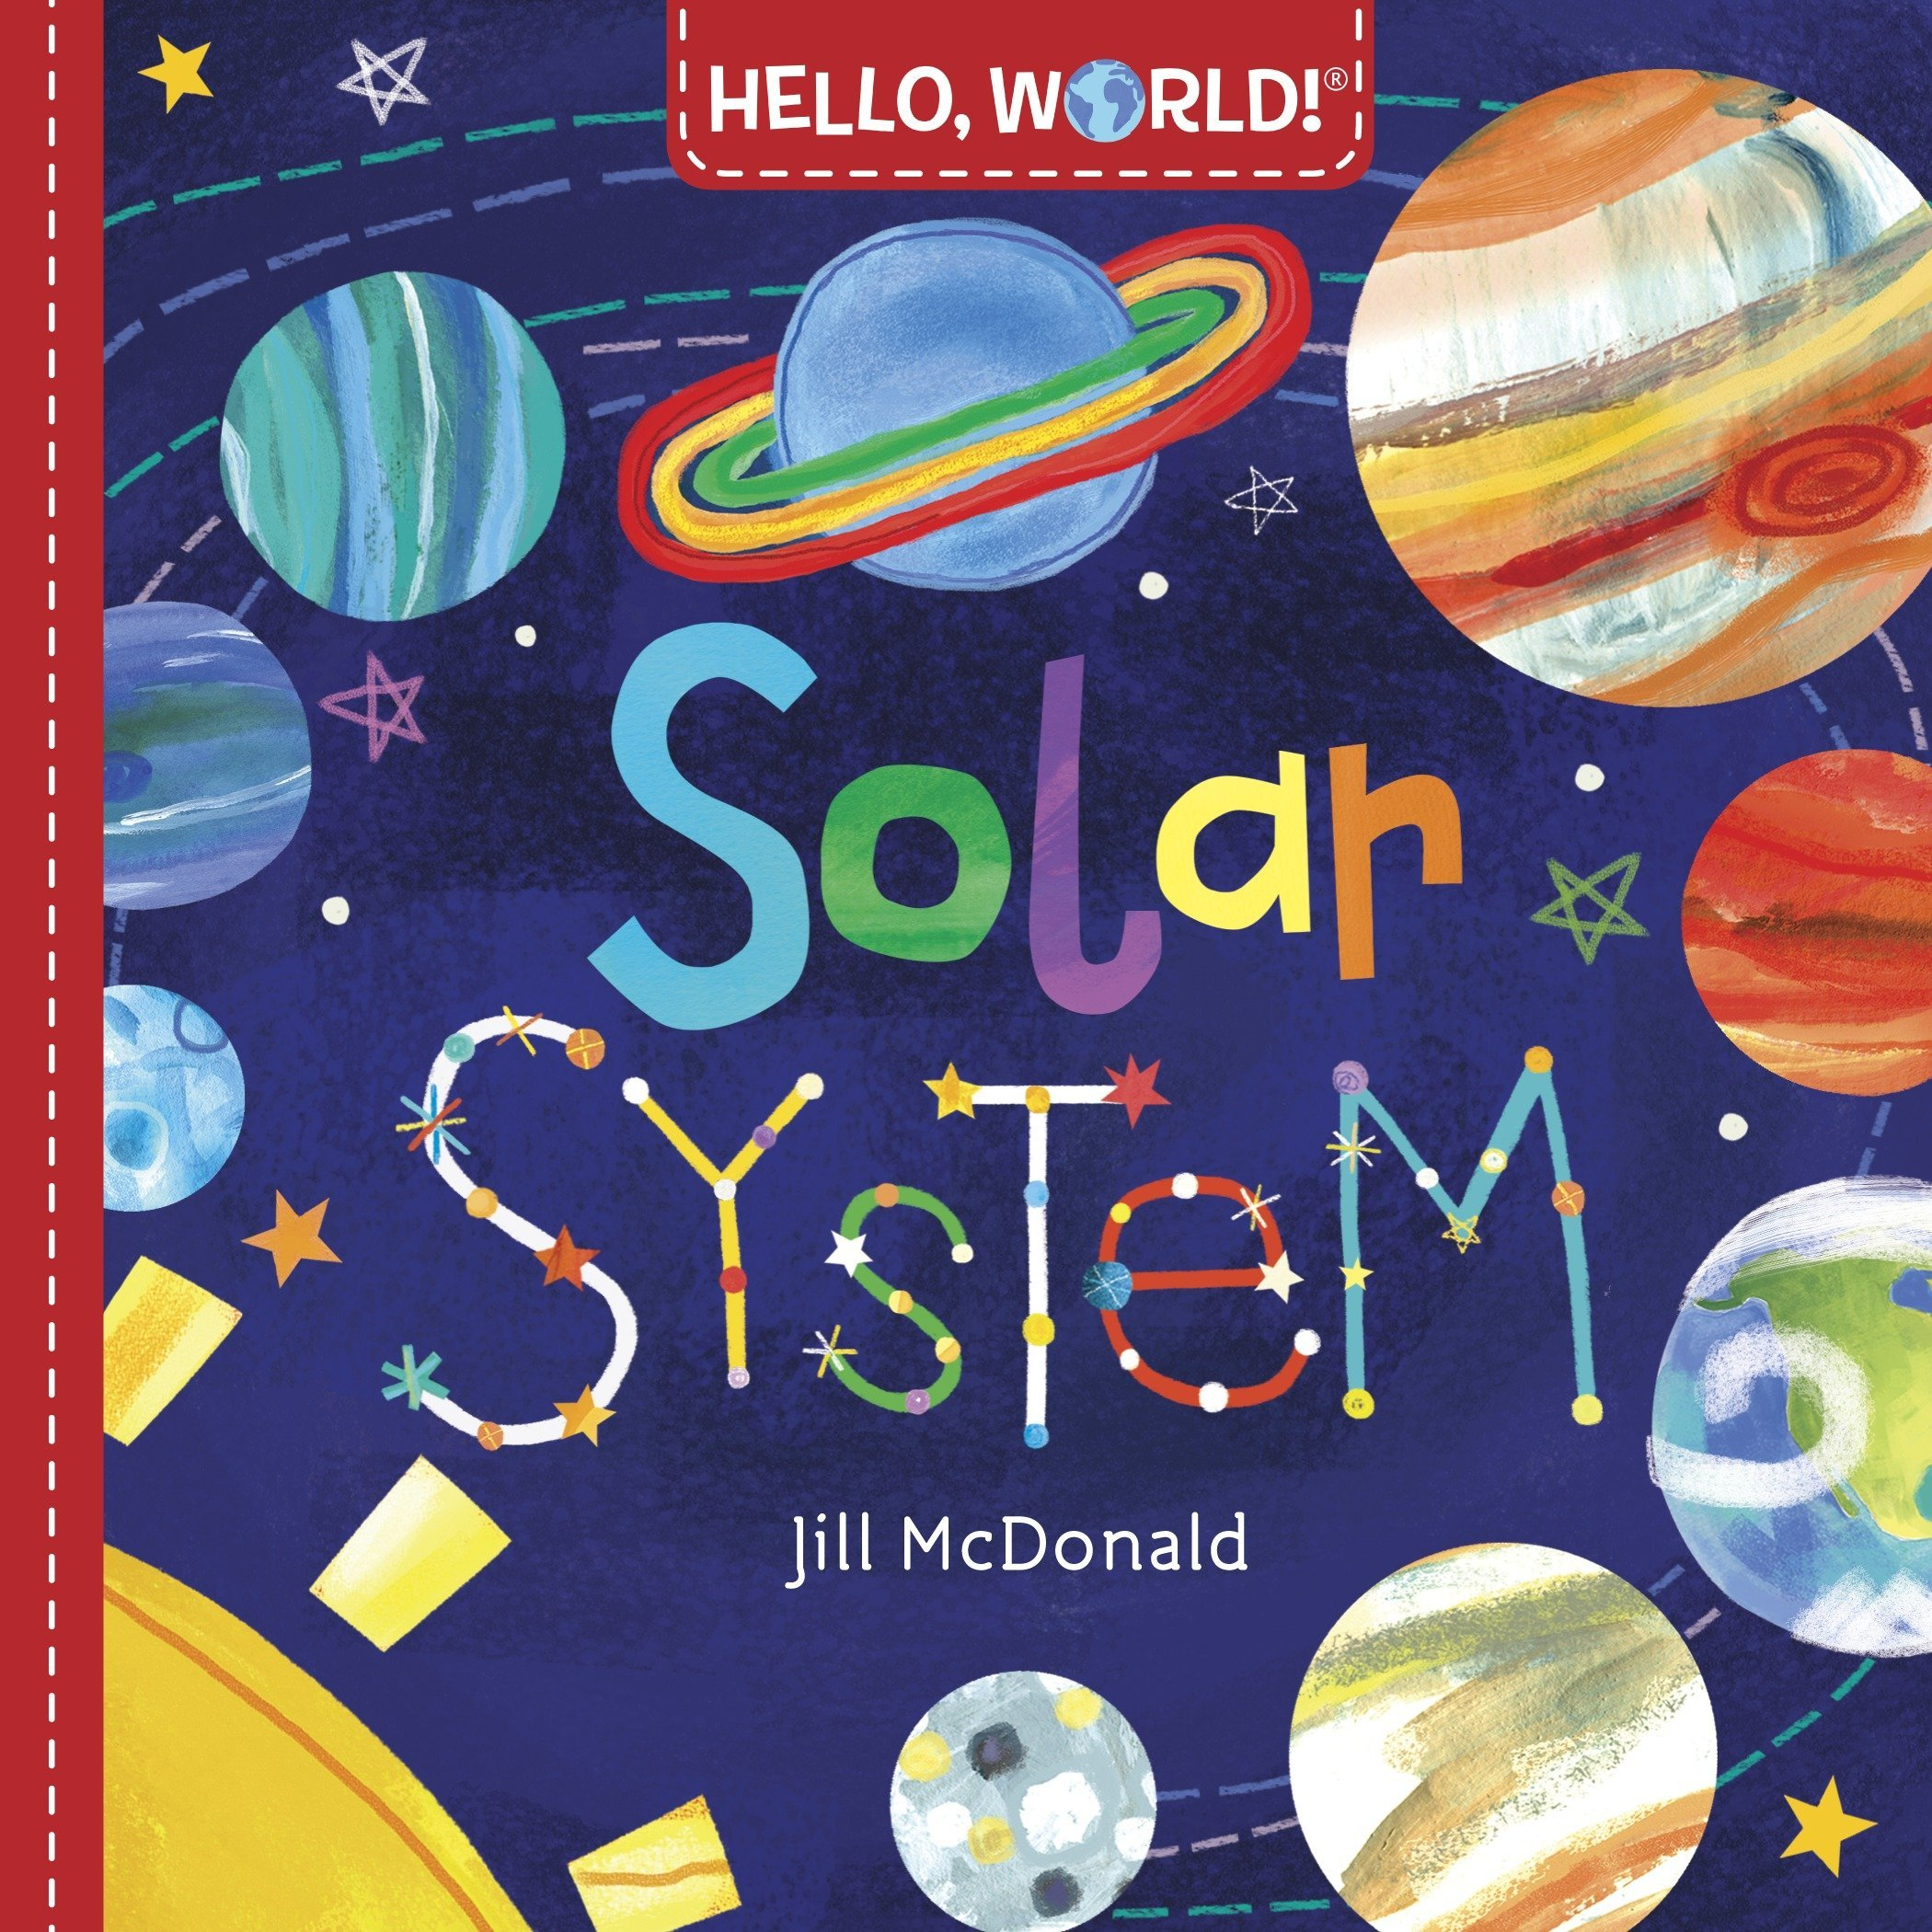 Image result for hello, world!: solar system by jill mcdonald